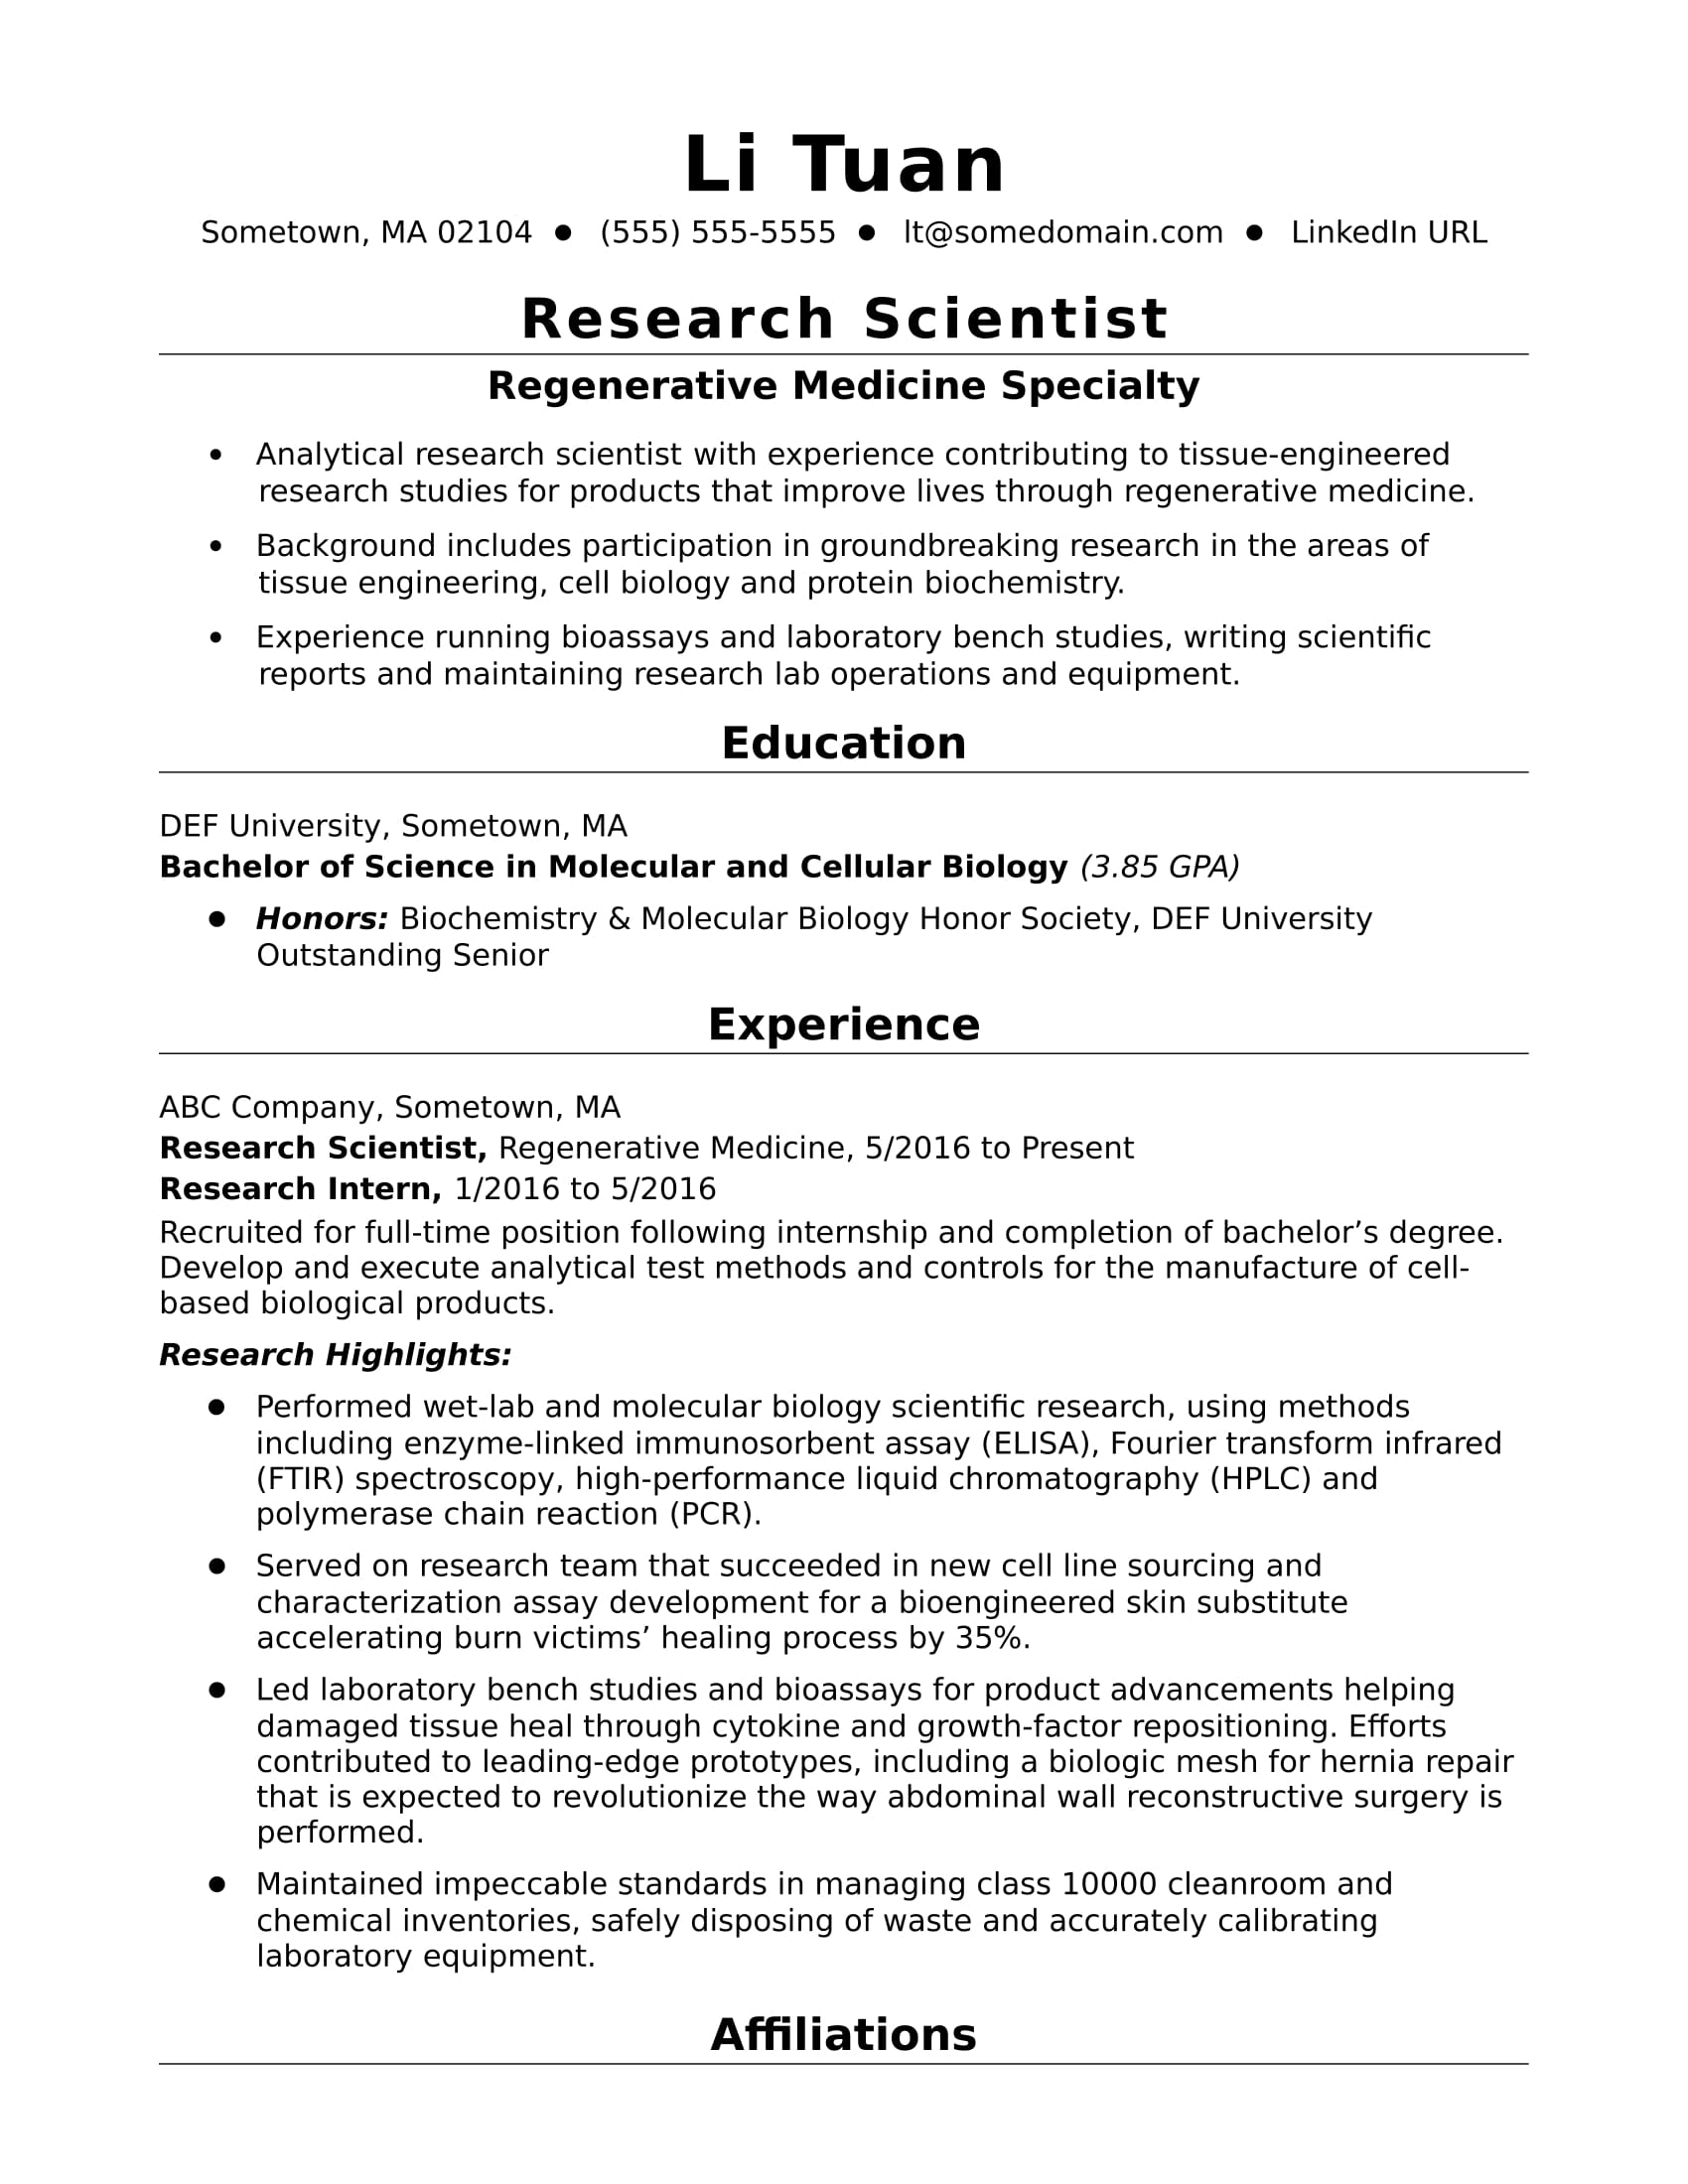 entry level research scientist resume sample monster with experience blank form free Resume Resume With Research Experience